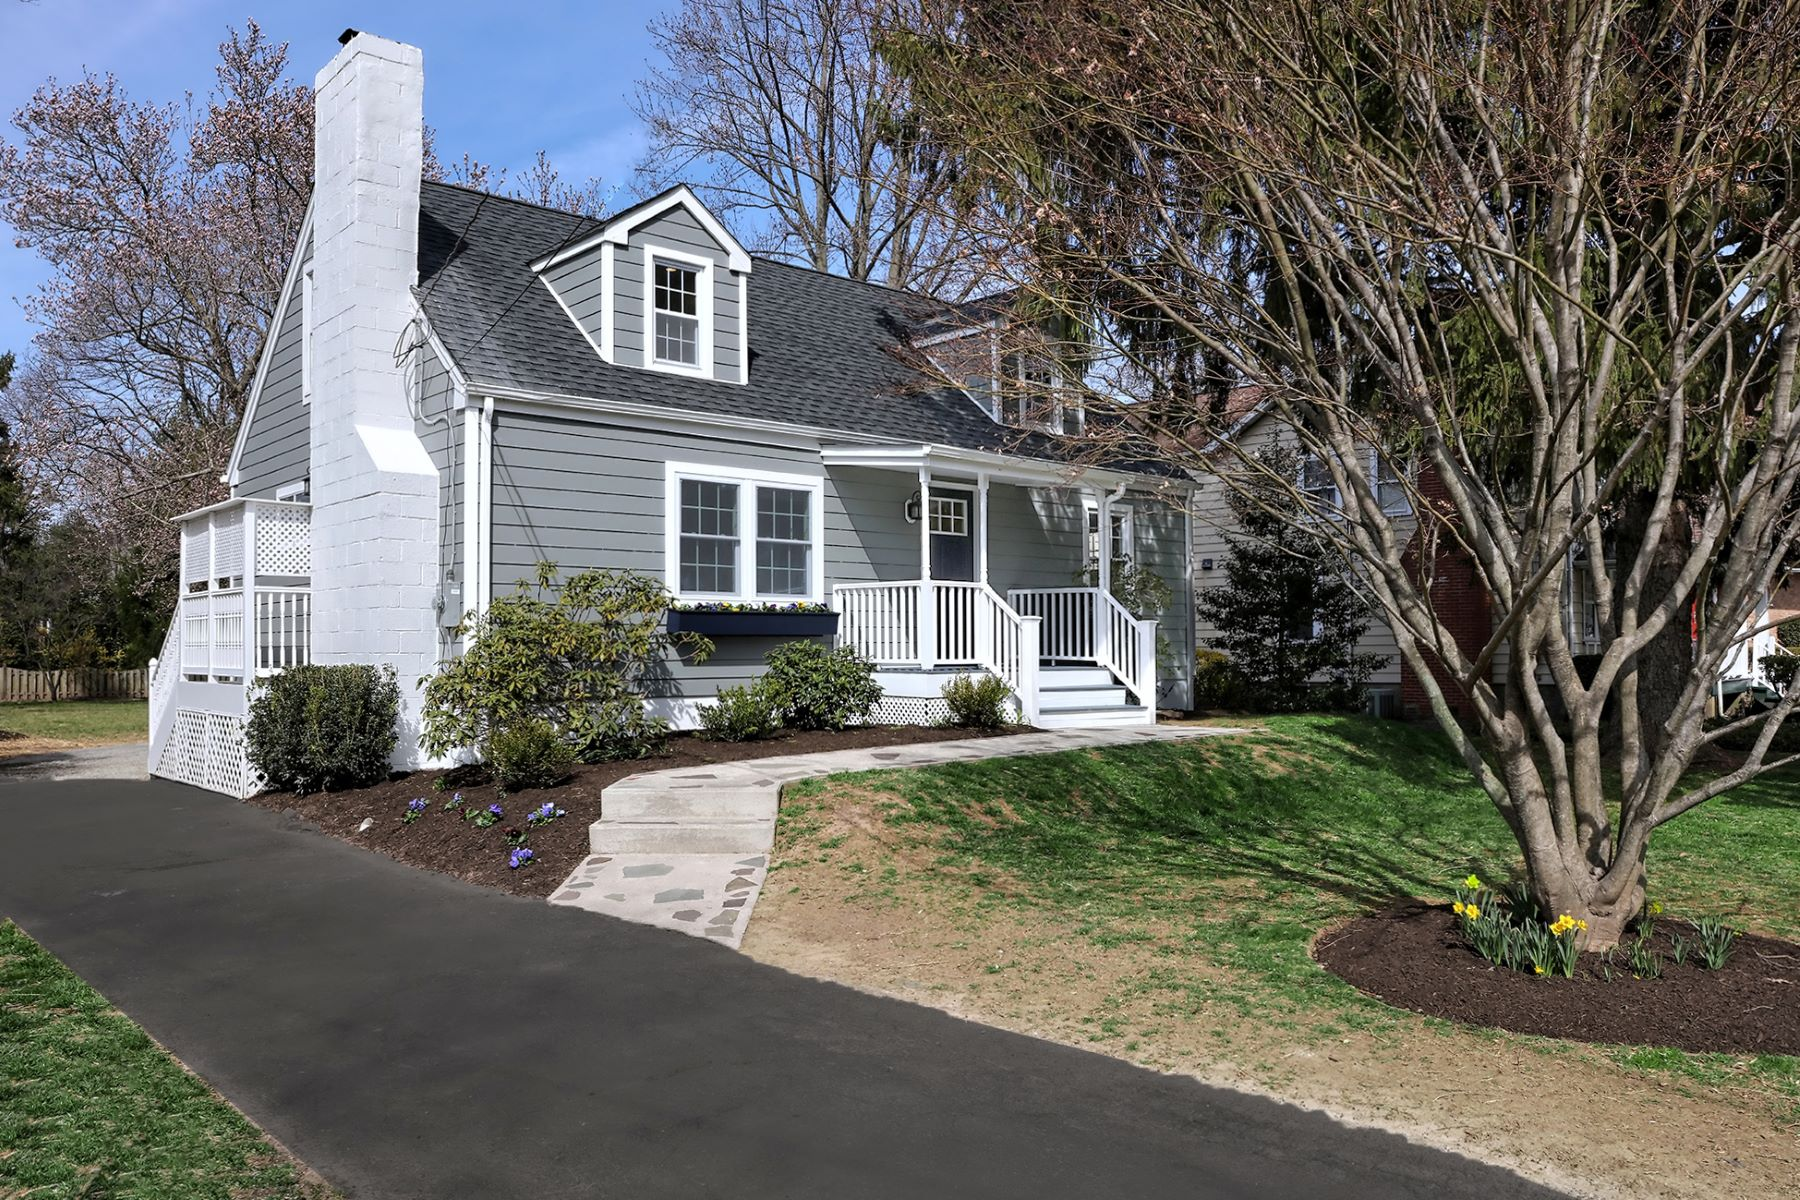 Single Family Home for Sale at In the Heart of Pennington - Meticulously Renovated 316 South Main Street, Pennington, New Jersey 08534 United States